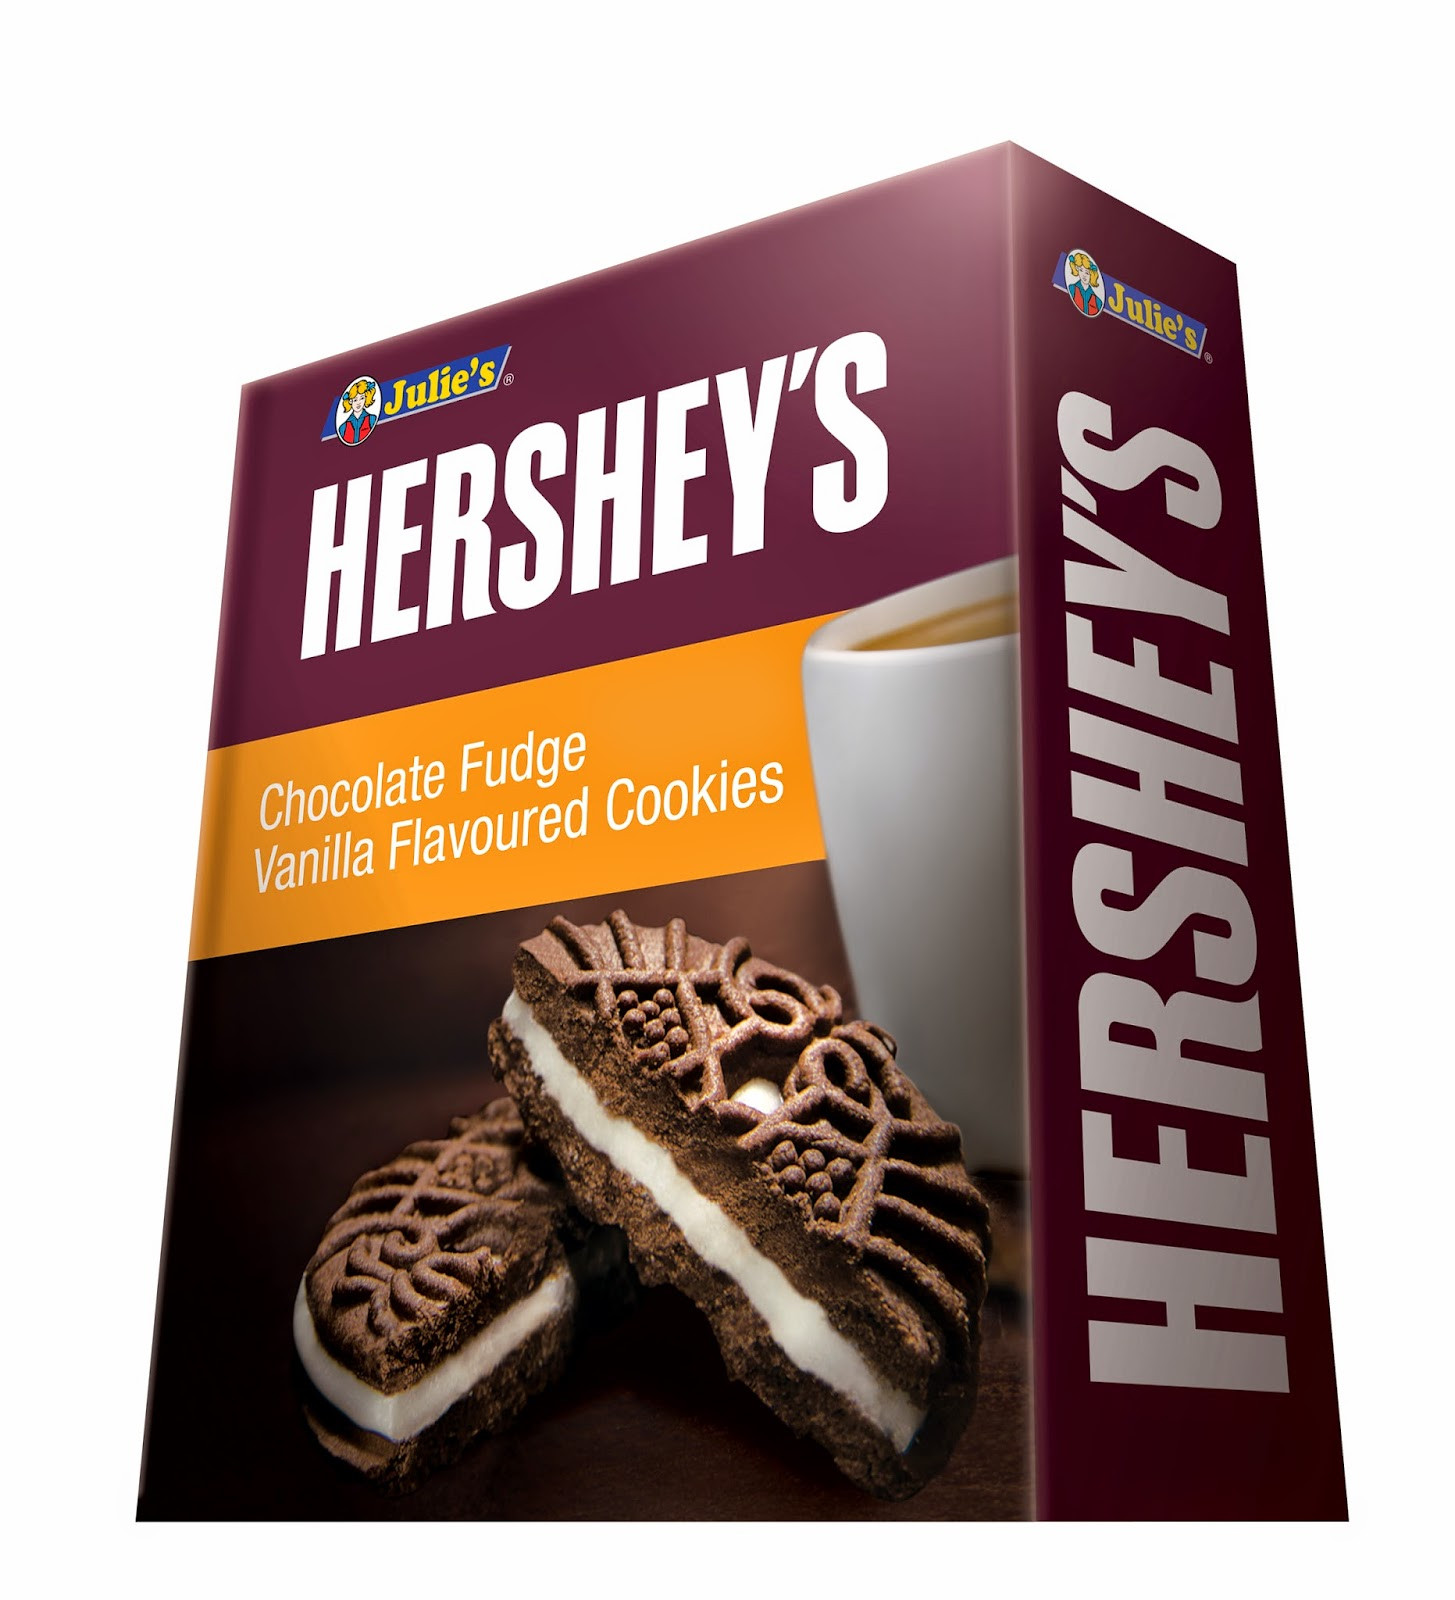 Julie's Hershey's Chocolate Fudge Vanilla Flavoured Cookies